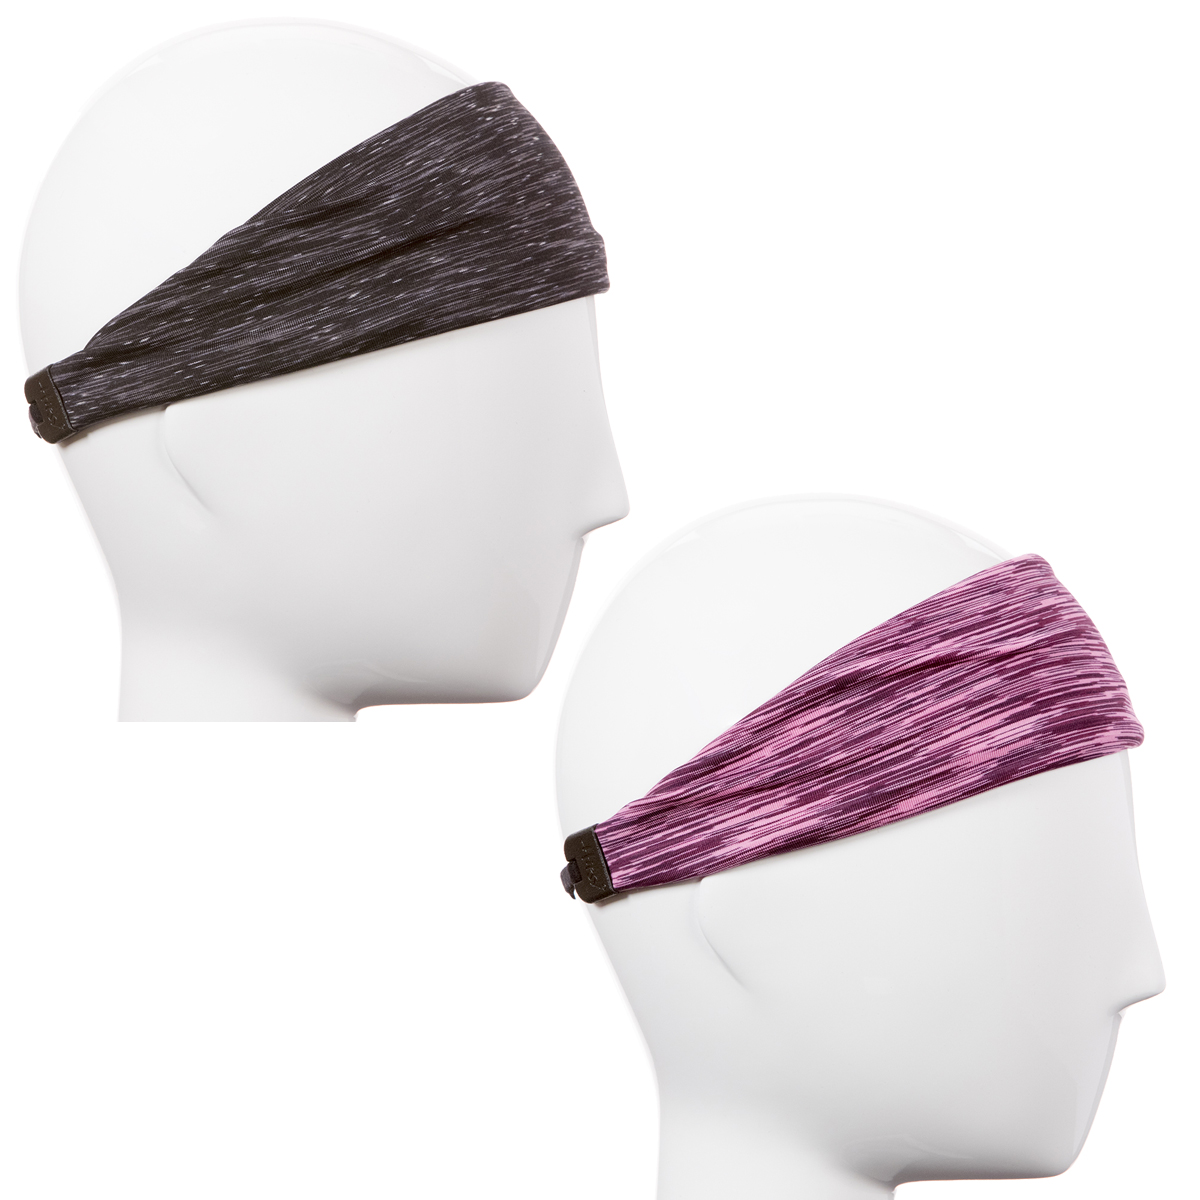 Hipsy Xflex Adjustable & Stretchy Sports Sweat Running Headbands for Women Gift Pack (Black & Pink 2pk)